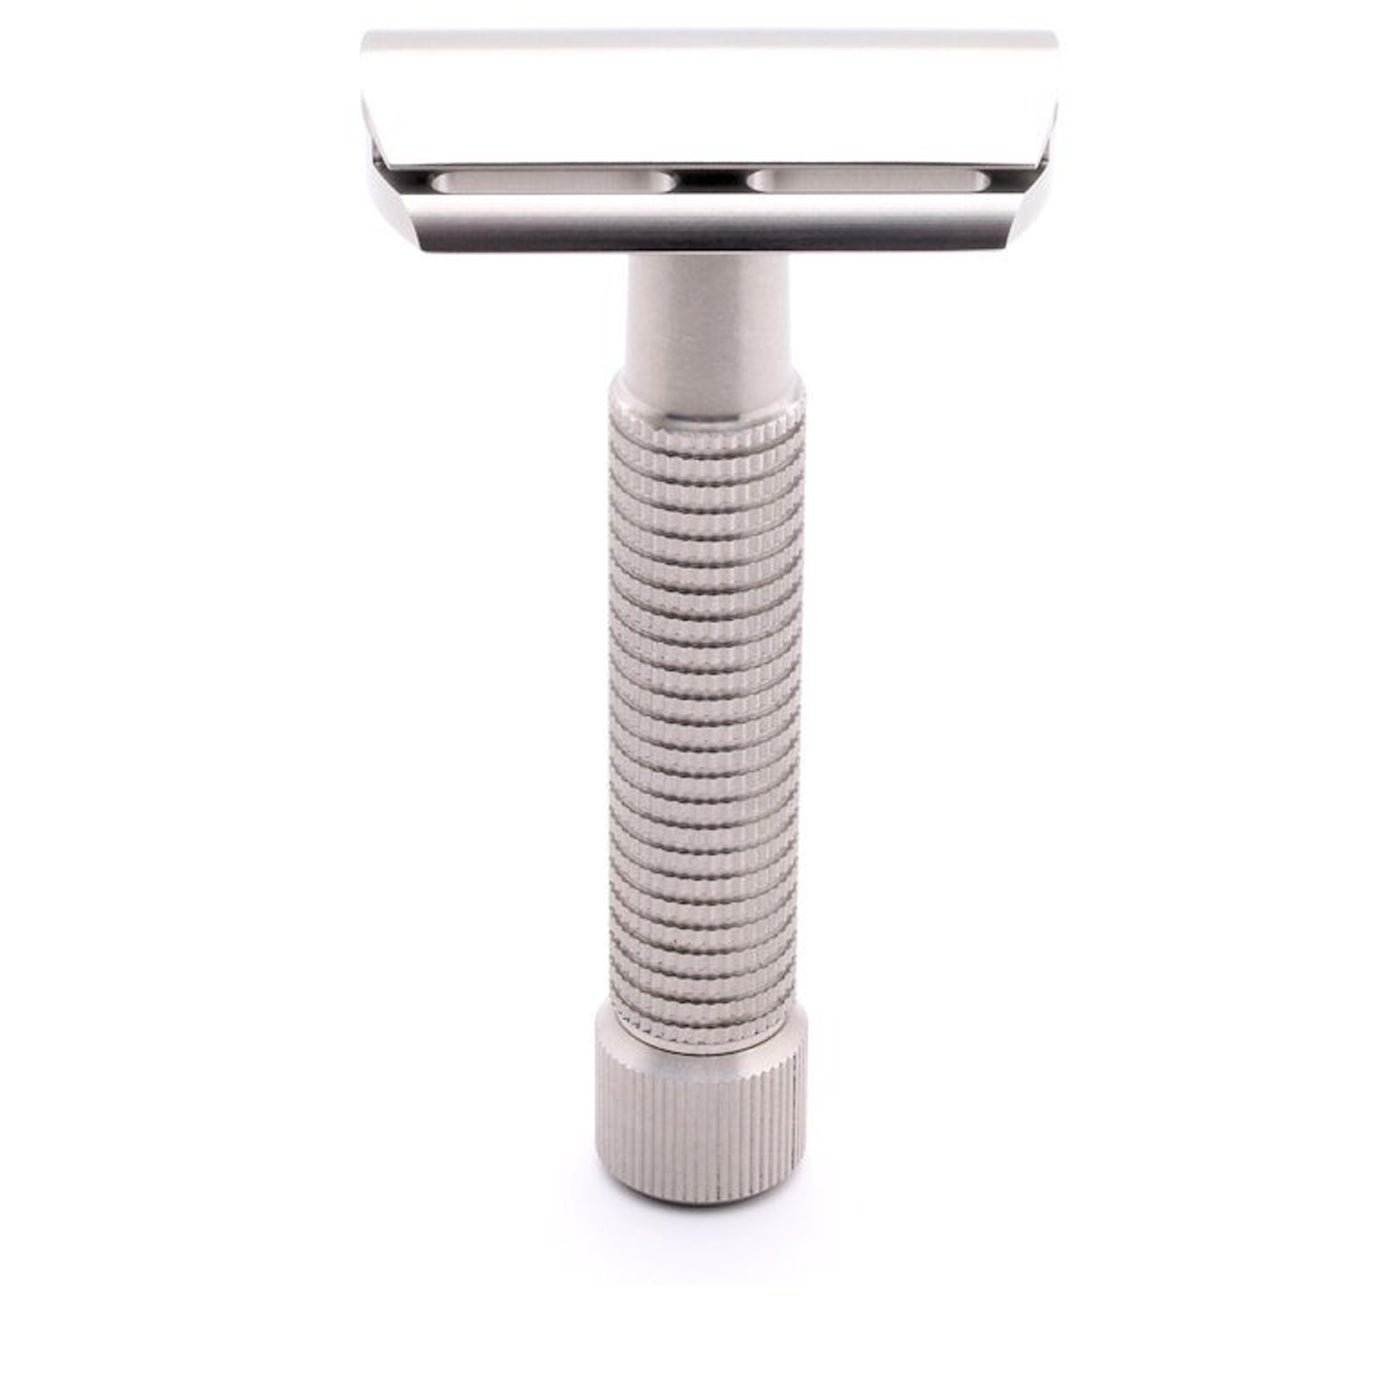 Rex Envoy Stainless Steel Double Edge Safety Razor